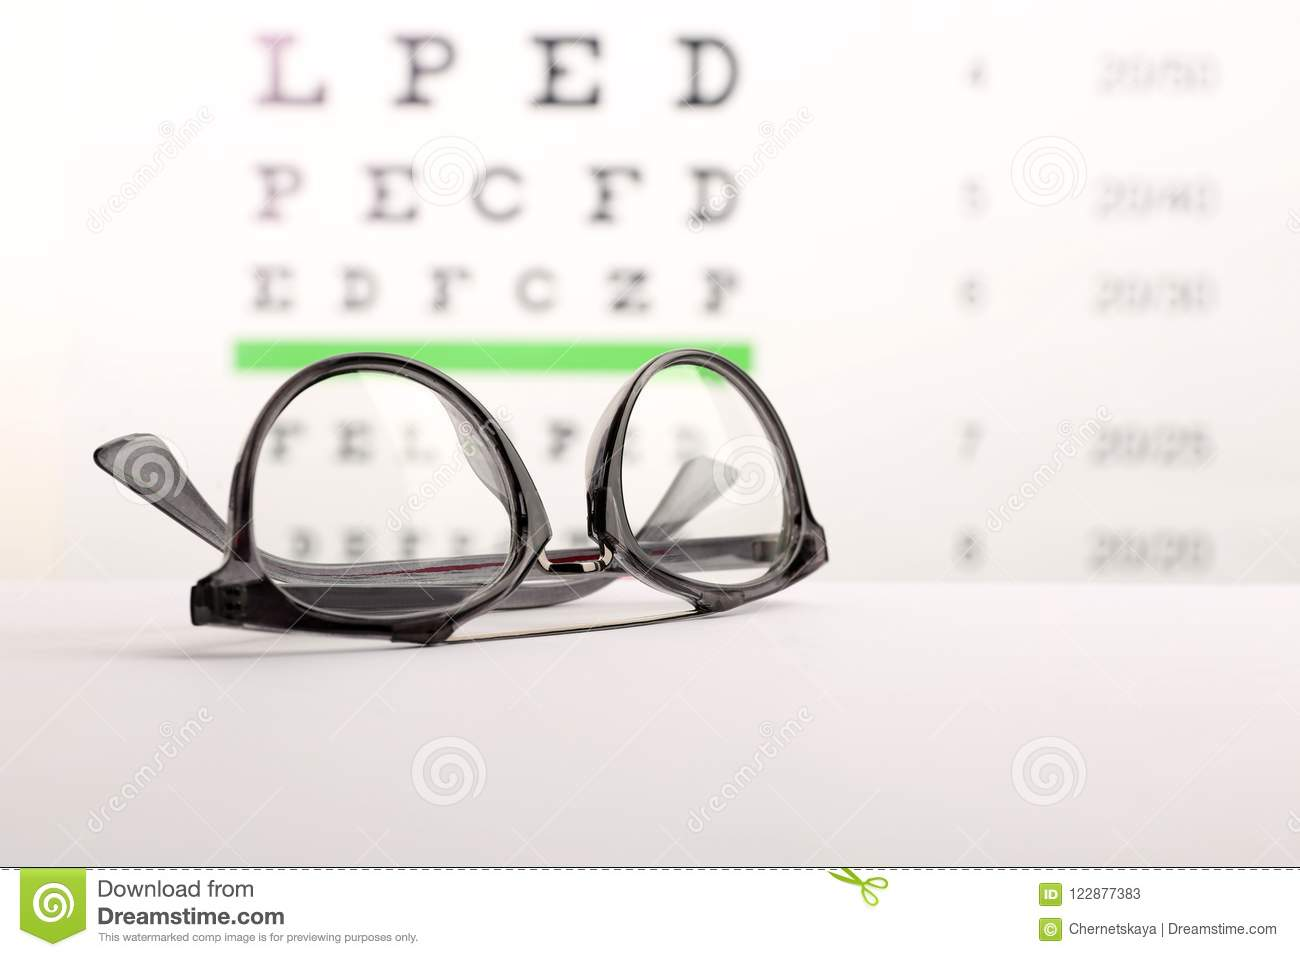 7c0f764a909a Glasses With Corrective Lenses On Table Stock Image - Image of chart ...